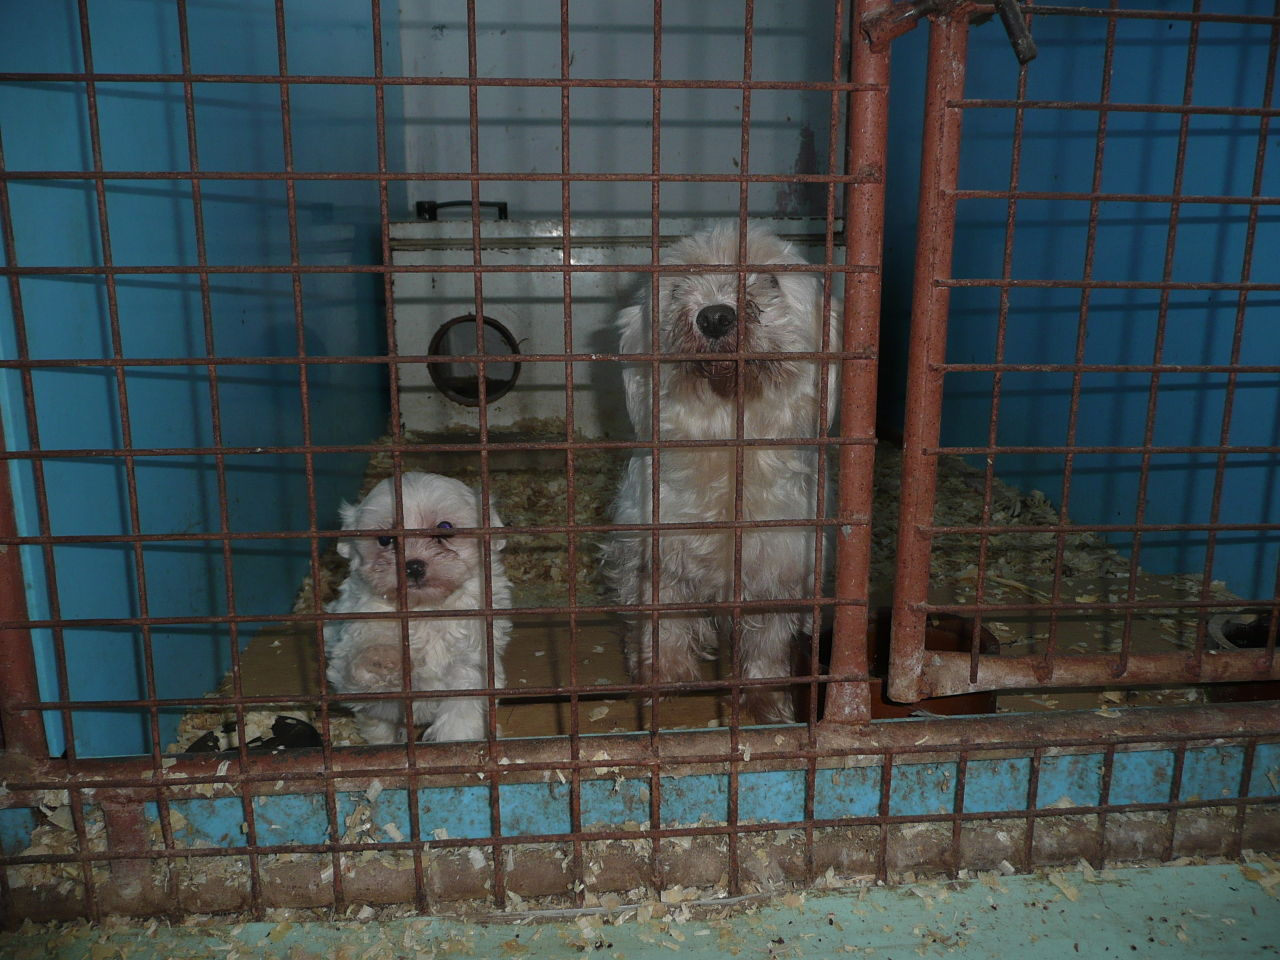 The USDA Is Still Hiding Animal Welfare Records from the Public — Why This Is an Issue